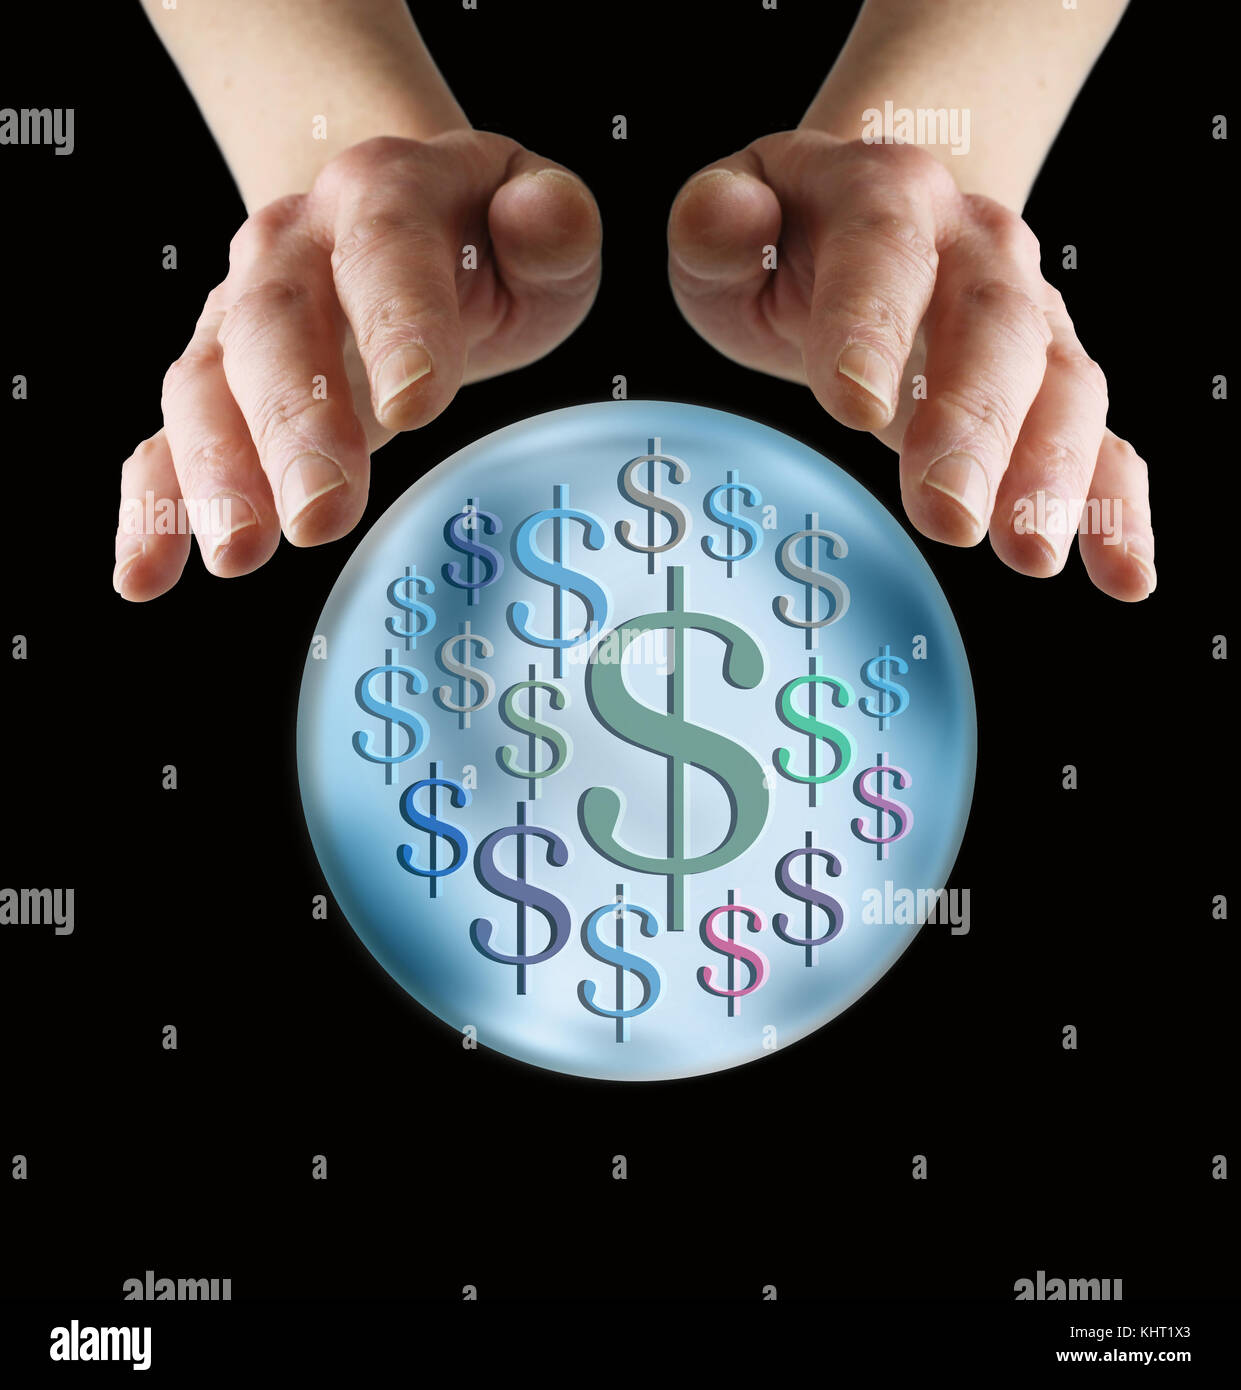 Predicting lots of money in the future - female hands cupped around a large crystal ball with random $ dollar signs - Stock Image